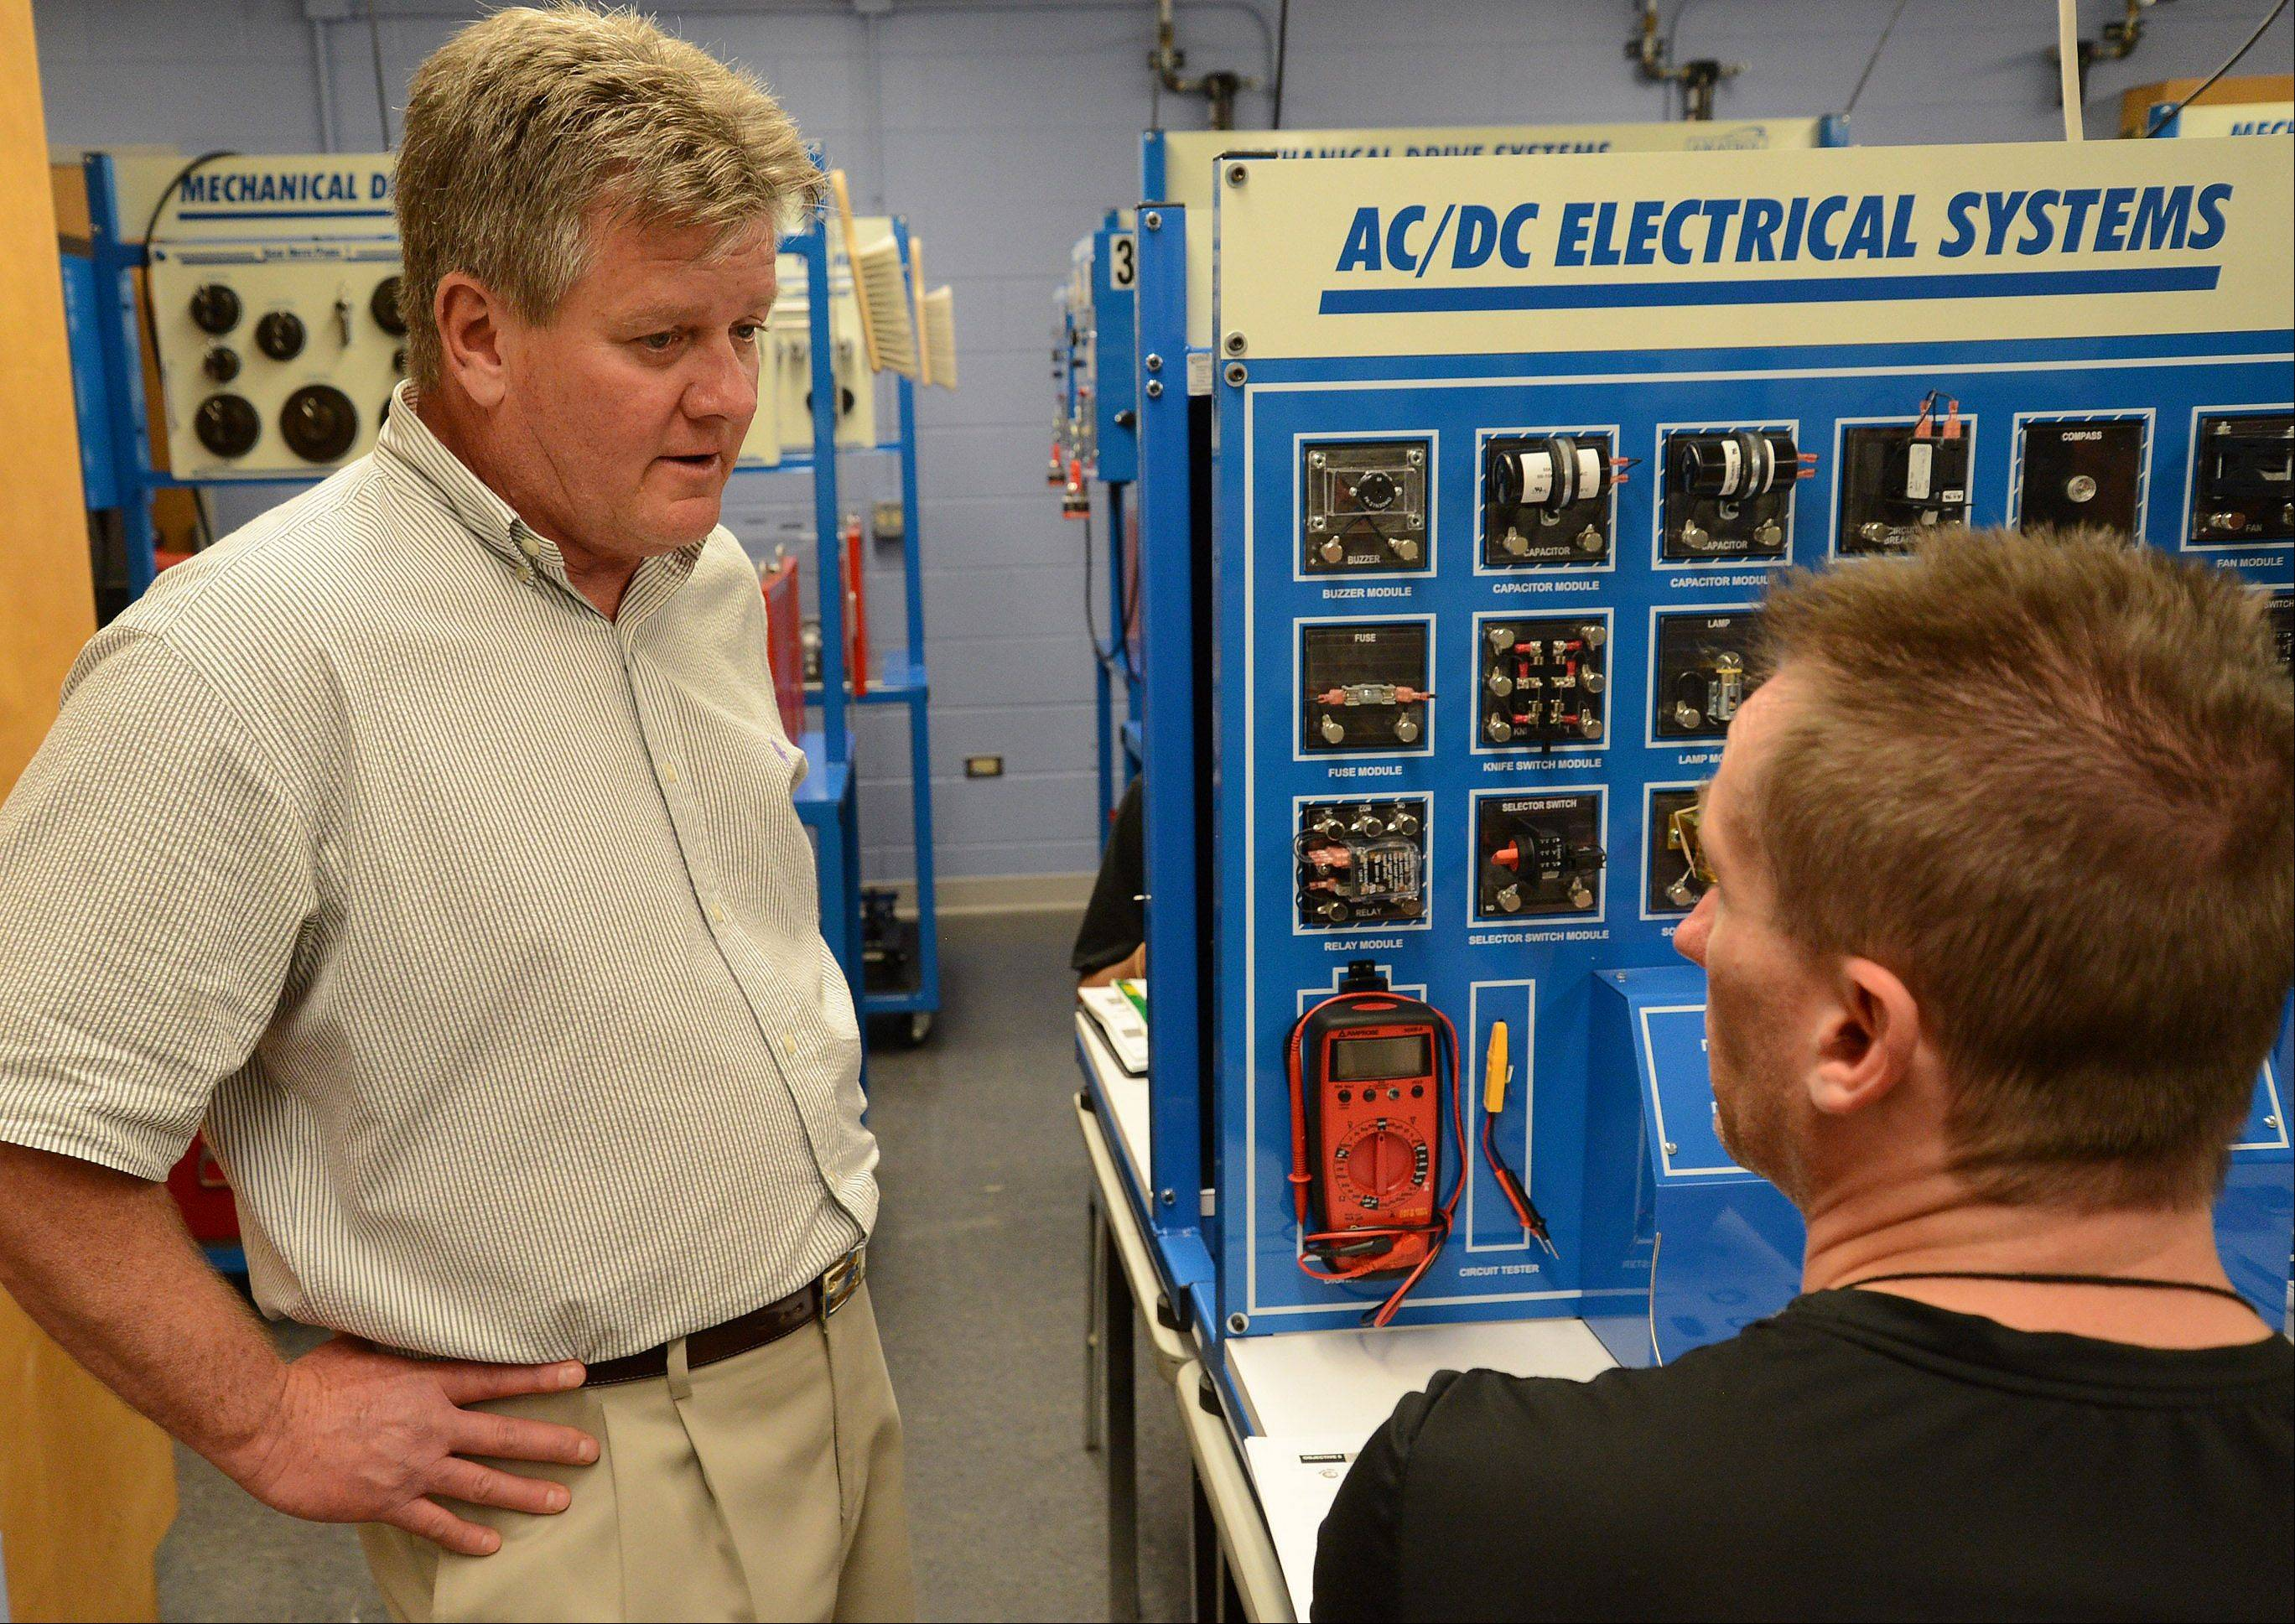 Dean Emeritus Gary Morgan explains mechatronics. The new program is part of a College of Lake County effort to help bring skilled workers to local manufacturing businesses looking for employees.